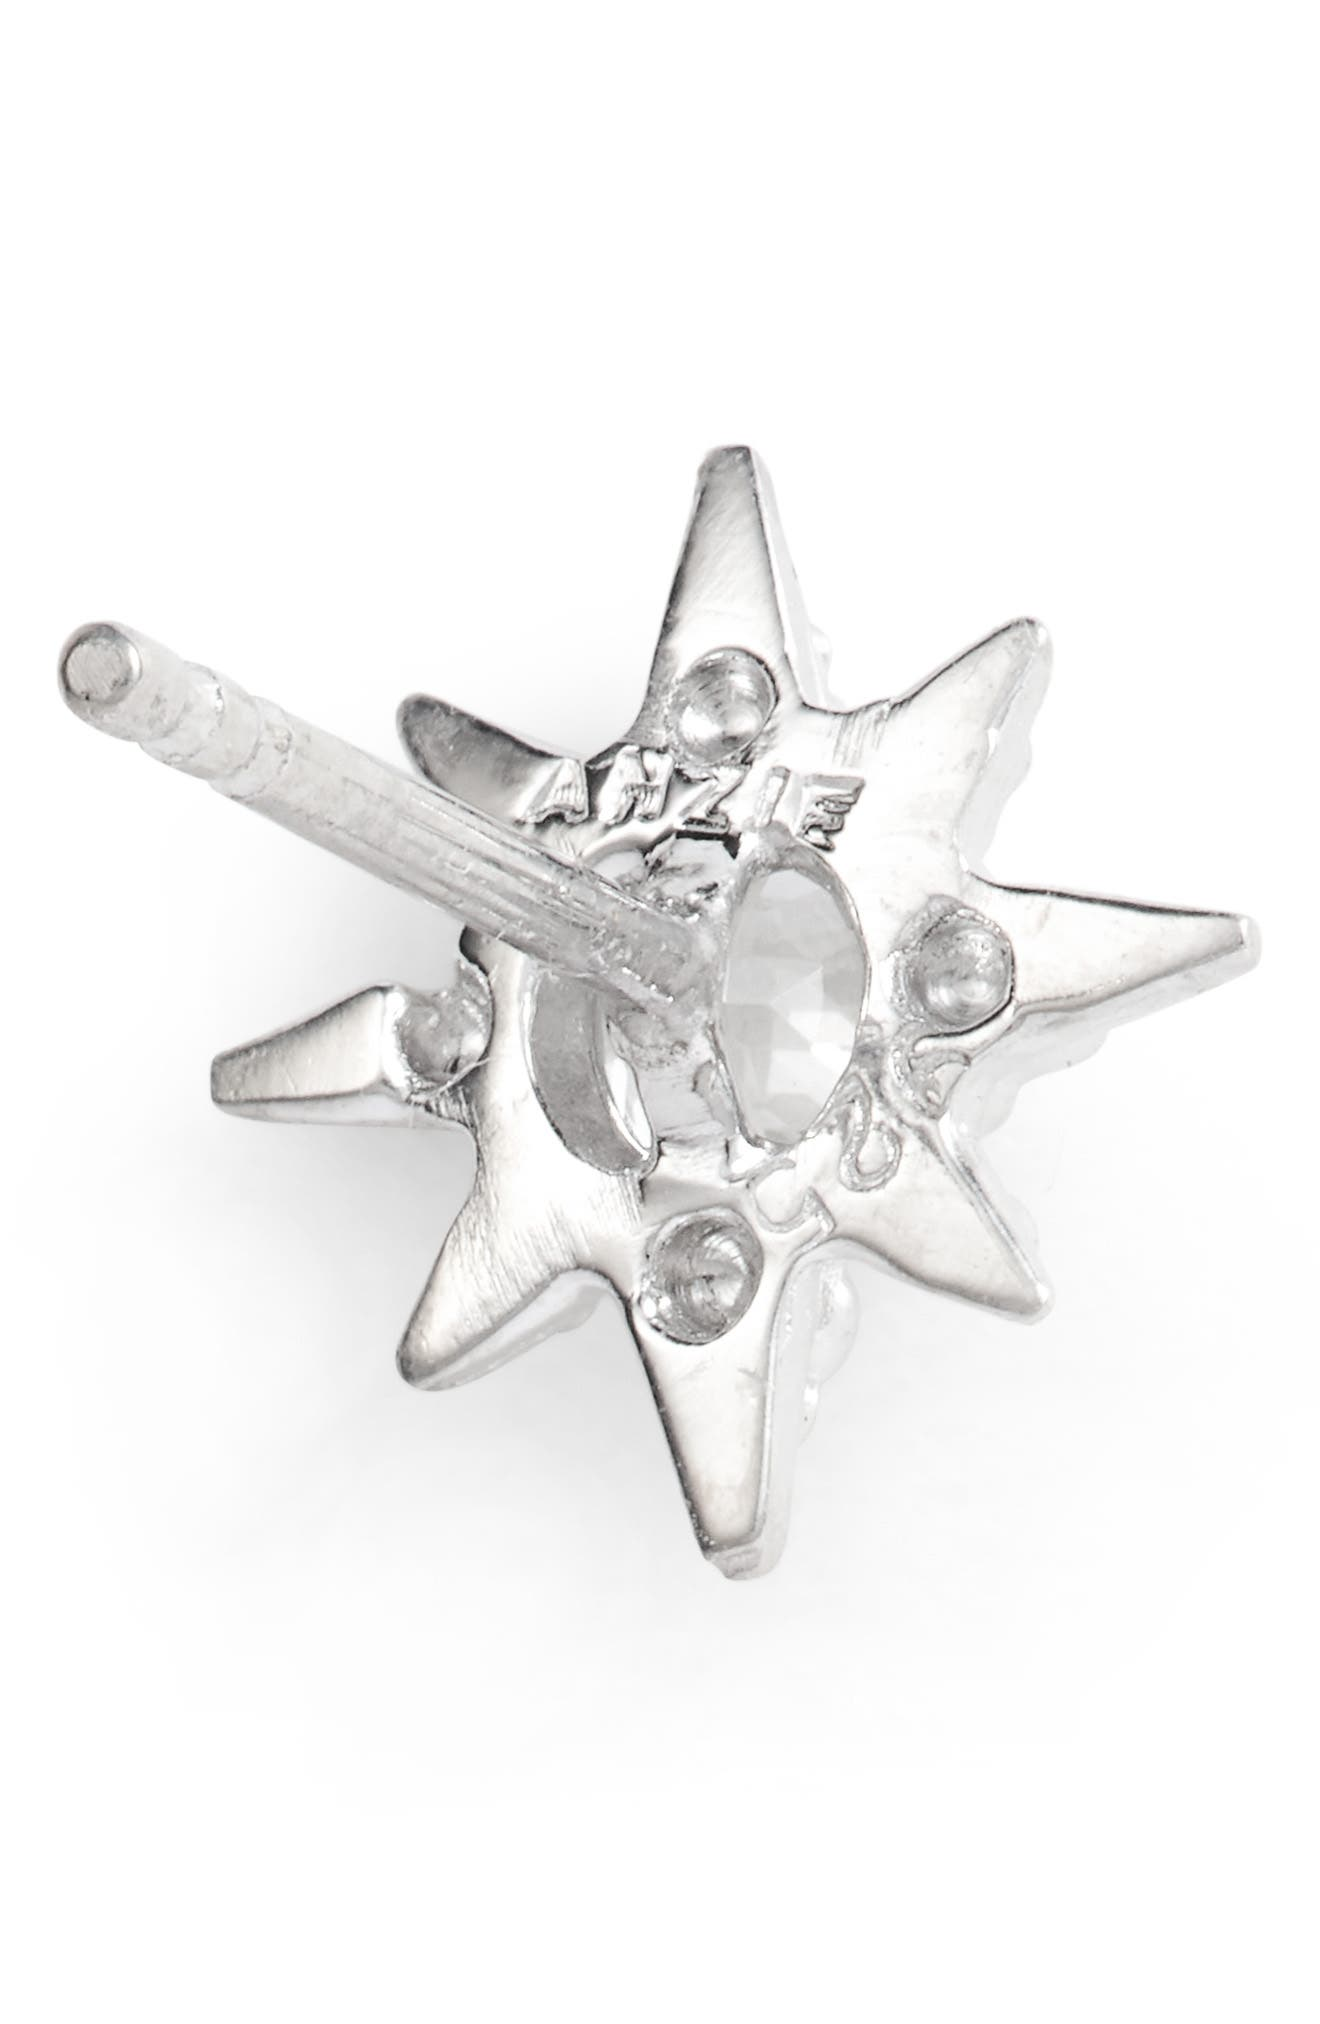 Micro Aztec Starburst Earrings,                             Alternate thumbnail 3, color,                             SILVER